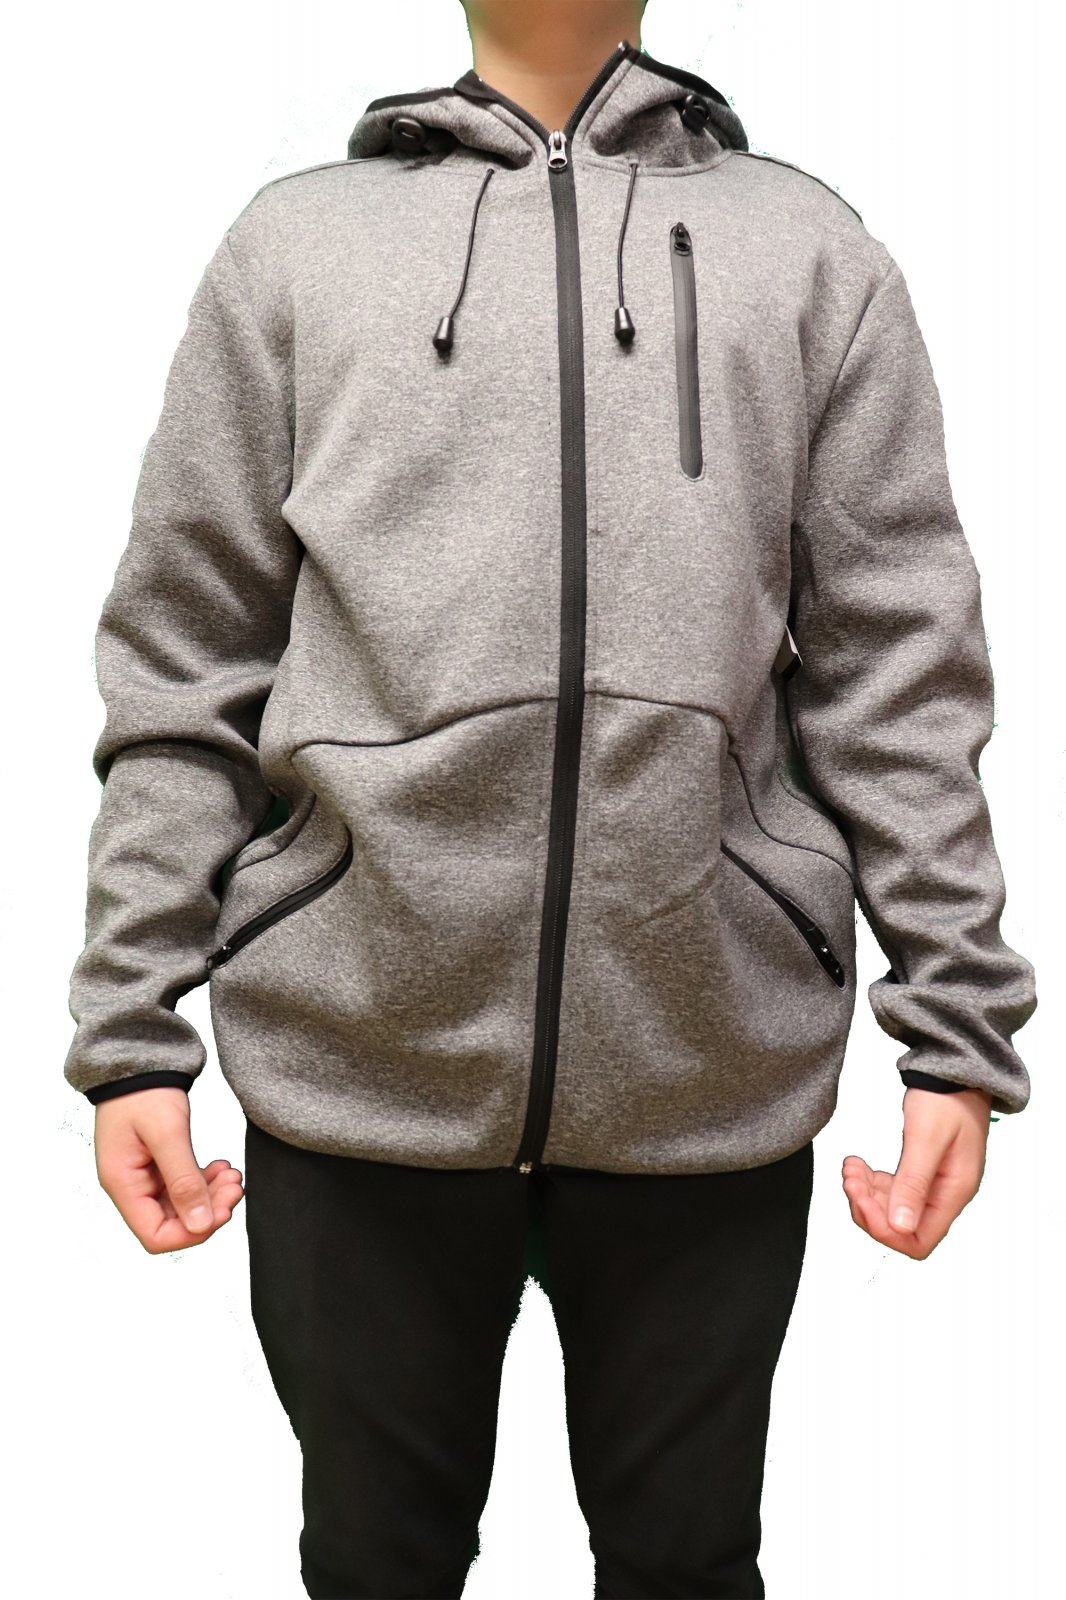 Surf & Adventure Crossing 2.0 Fleece